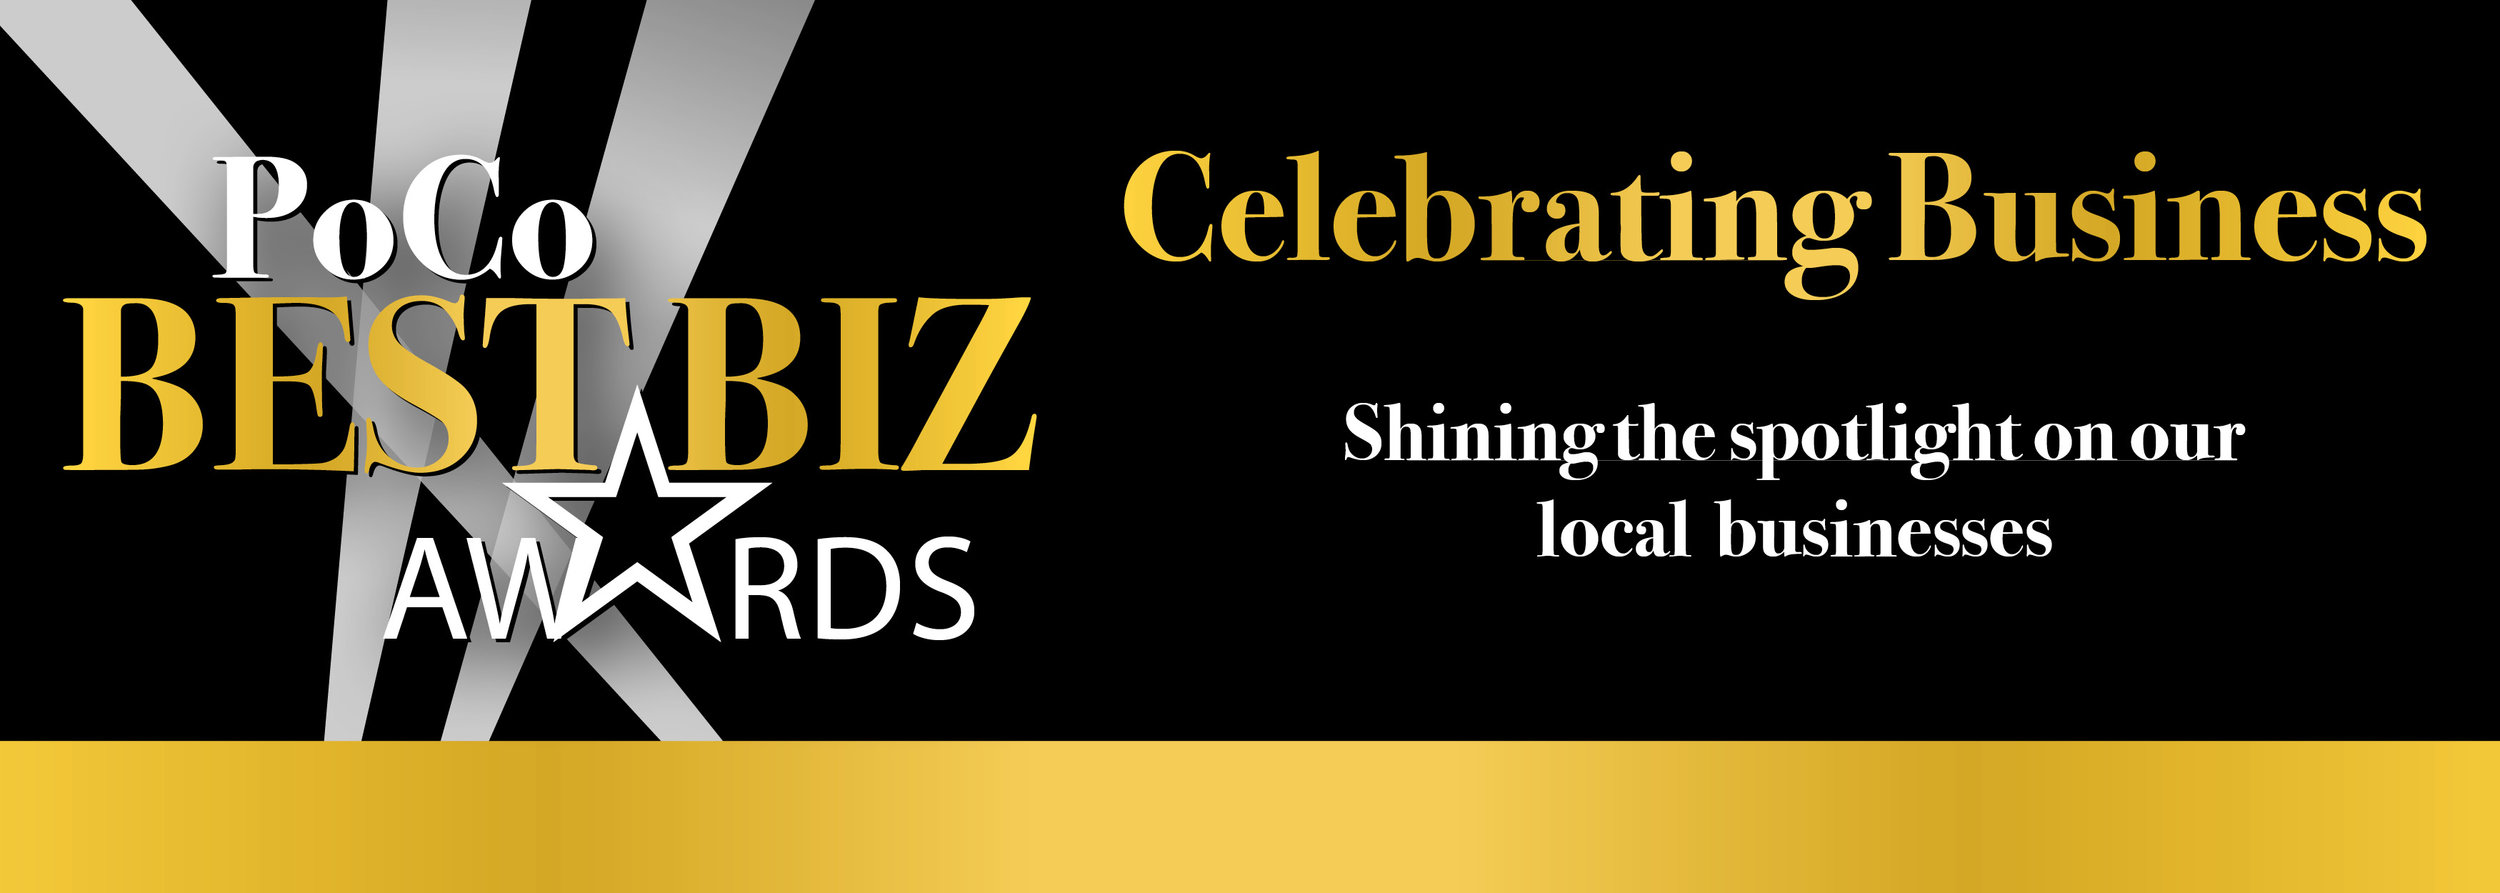 """""""Launched in 2013, the PoCo Best Biz Awards recognize the contributions of local businesses, celebrate their accomplishments, and encourage Port Coquitlam residents to shop locally for goods and services. They include an awards program and annual business celebration and networking evening.   Anyone can vote for their favourite nominated business, and those who live, work or do business in Port Coquitlam will be entered in a draw for a $100 gift card."""""""